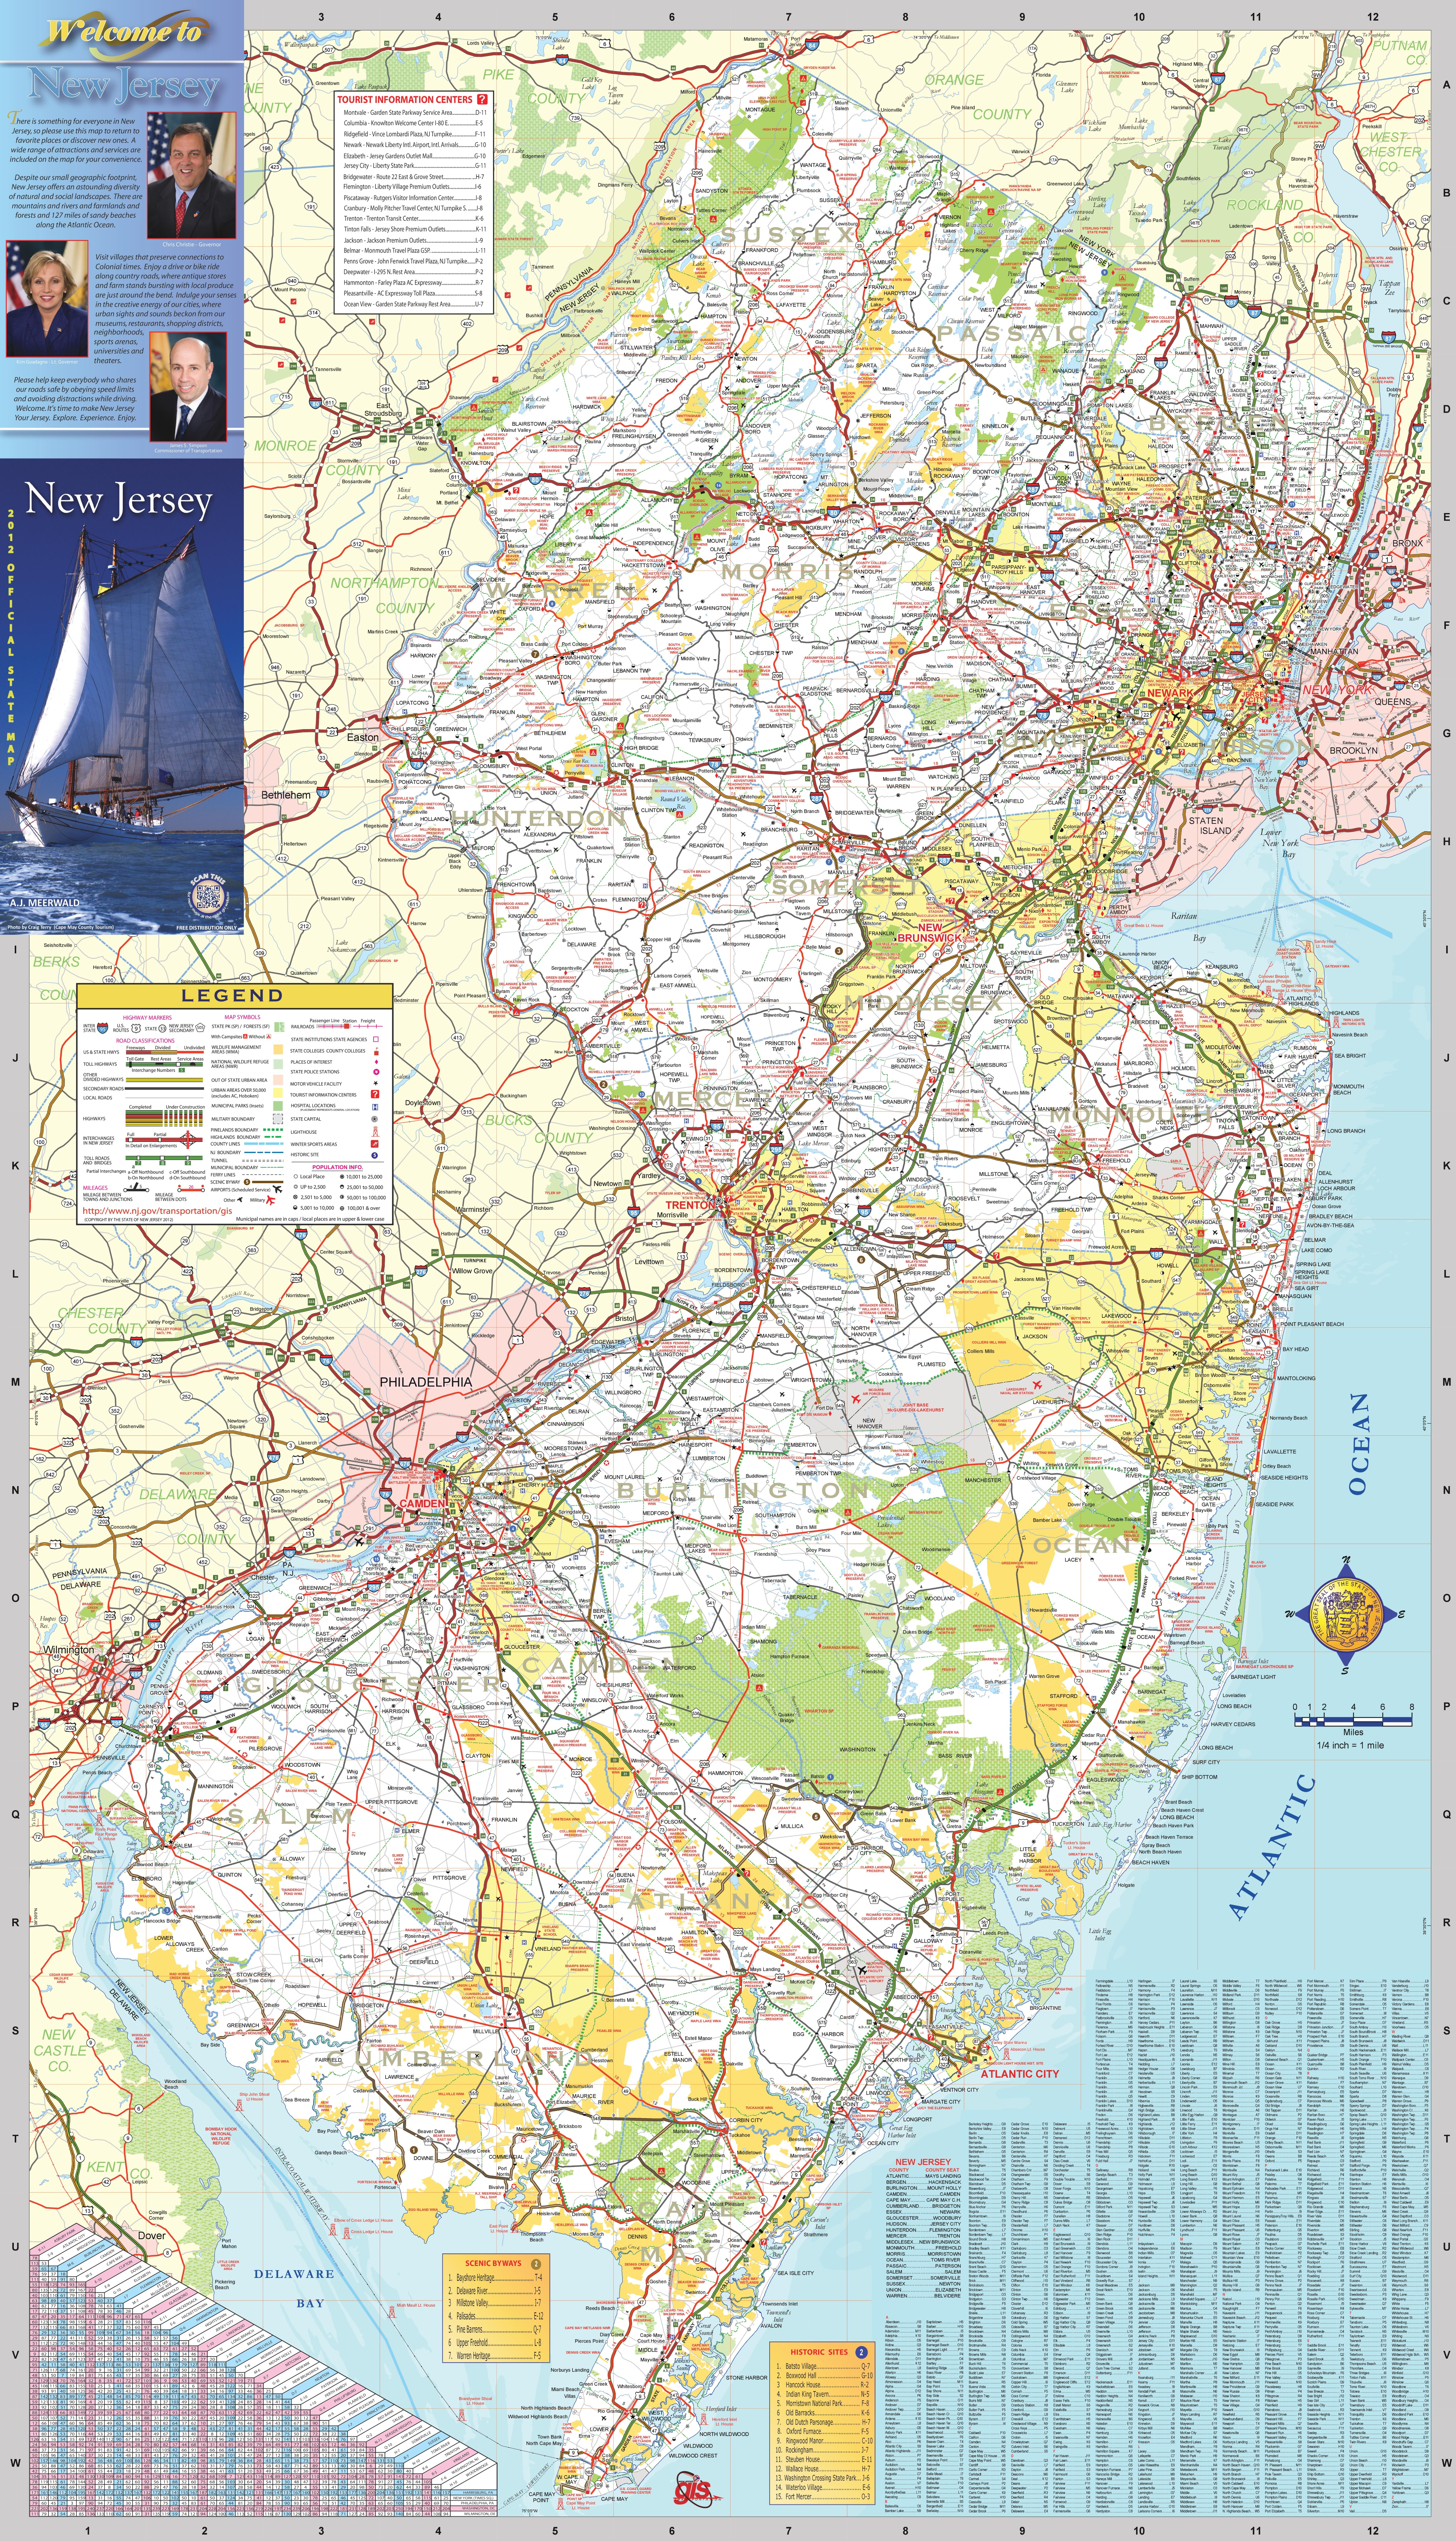 Map Of New Jersey Towns Large detailed tourist map of New Jersey with cities and towns